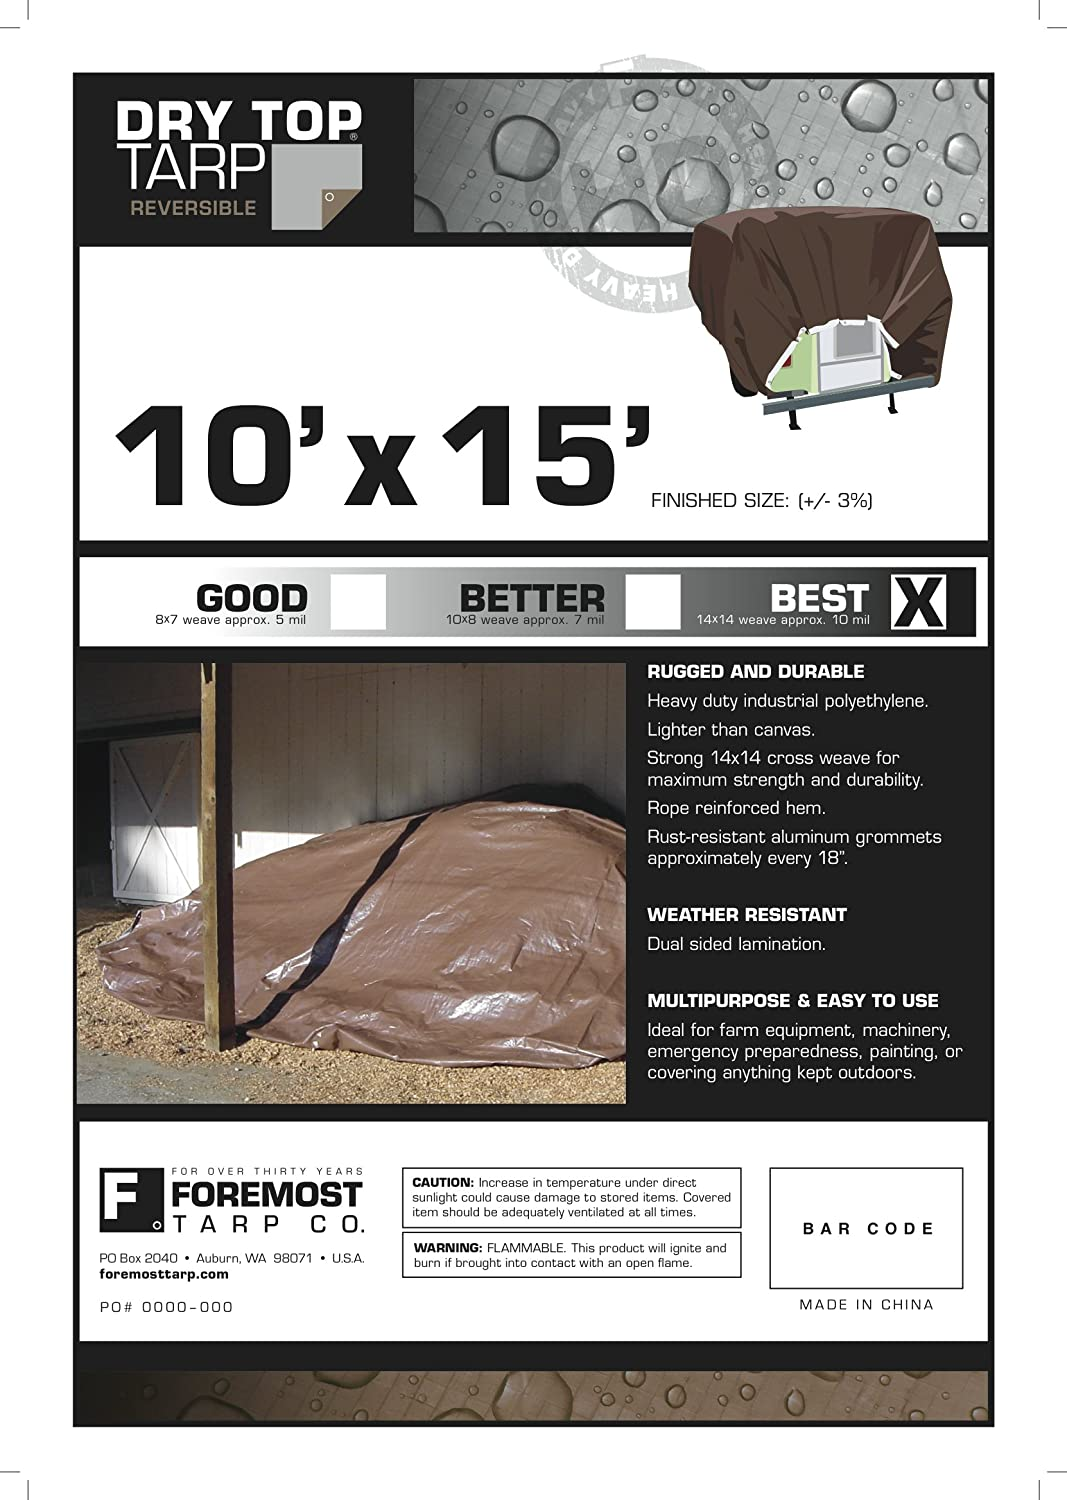 Dry Top 210156 10-by-15-Foot Full Finish Size Reversible Tarp, 10-mm (Silver/Brown)